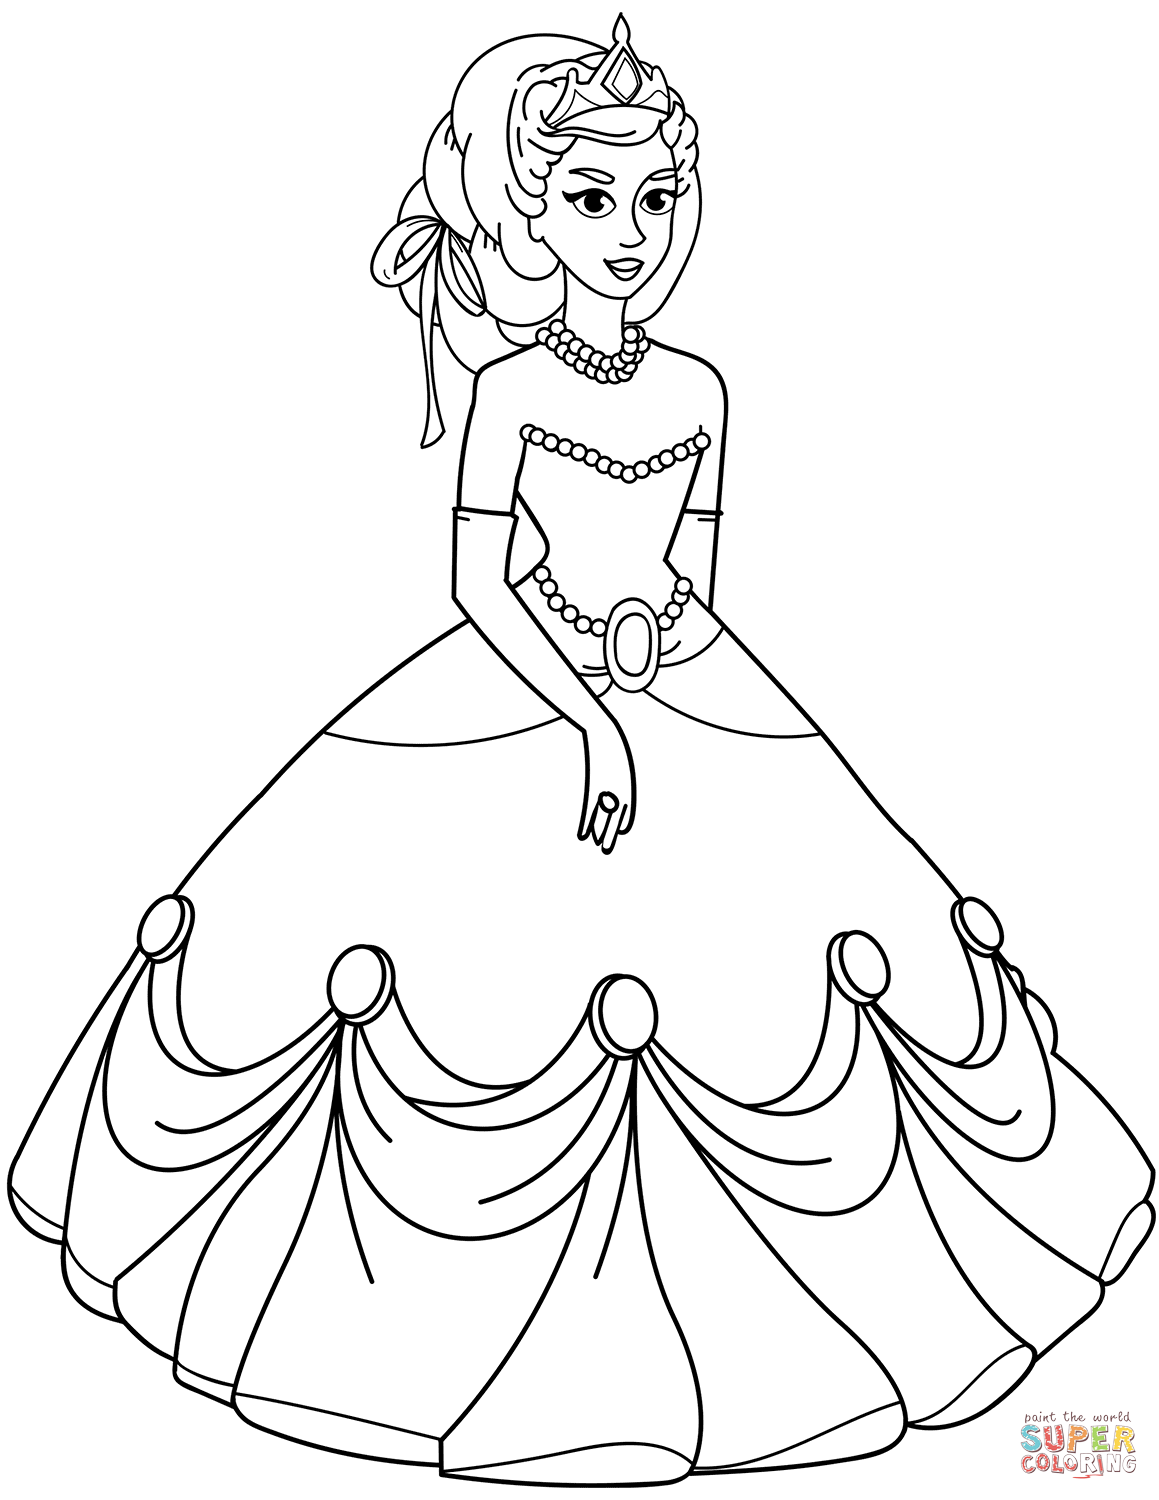 Princess In Ball Gown Dress Coloring Page